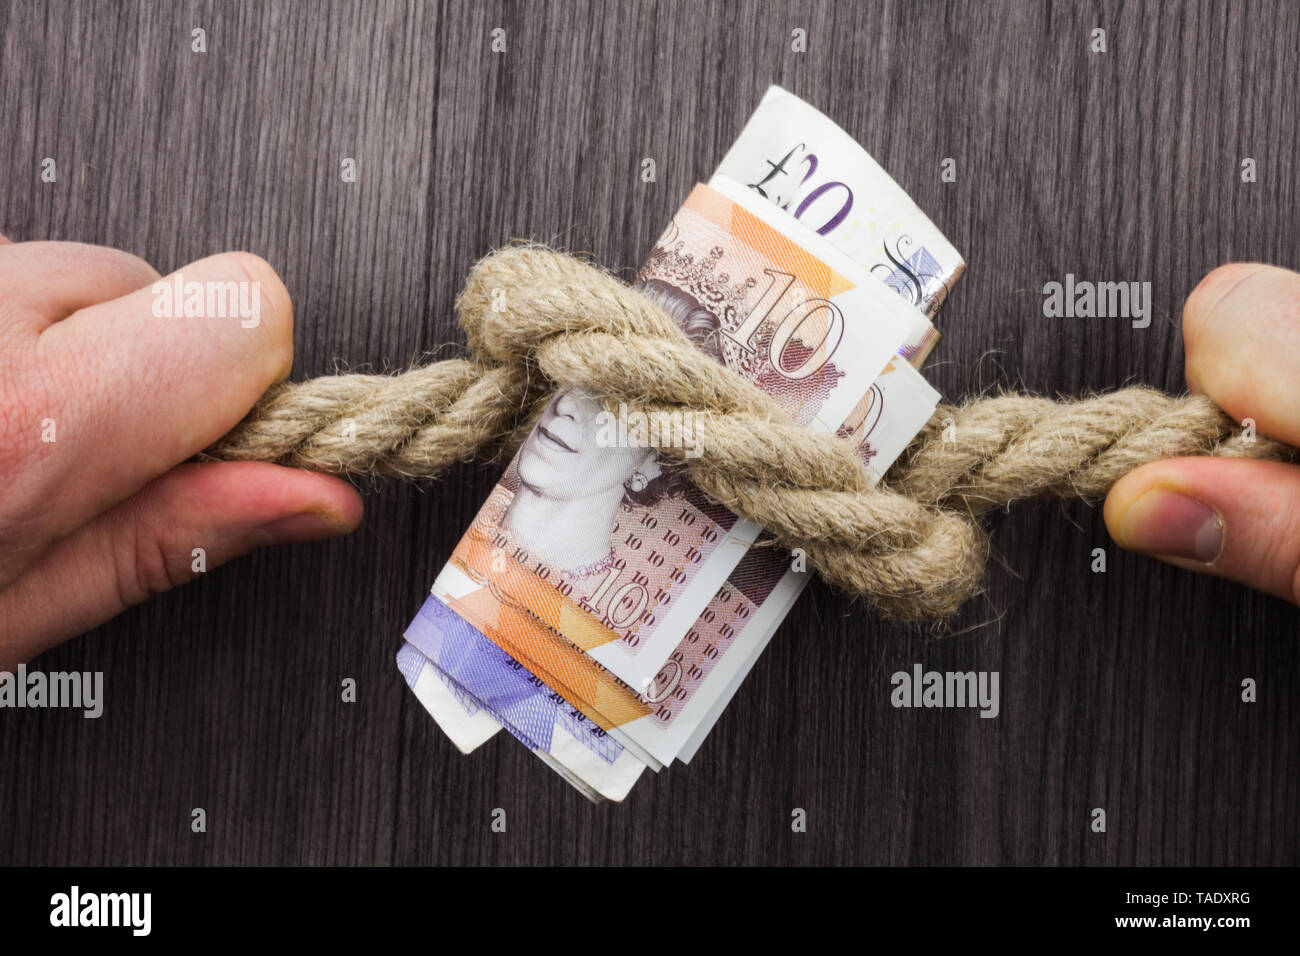 Front view wooden background two hands knot rope bills inside strong symbol - Stock Image